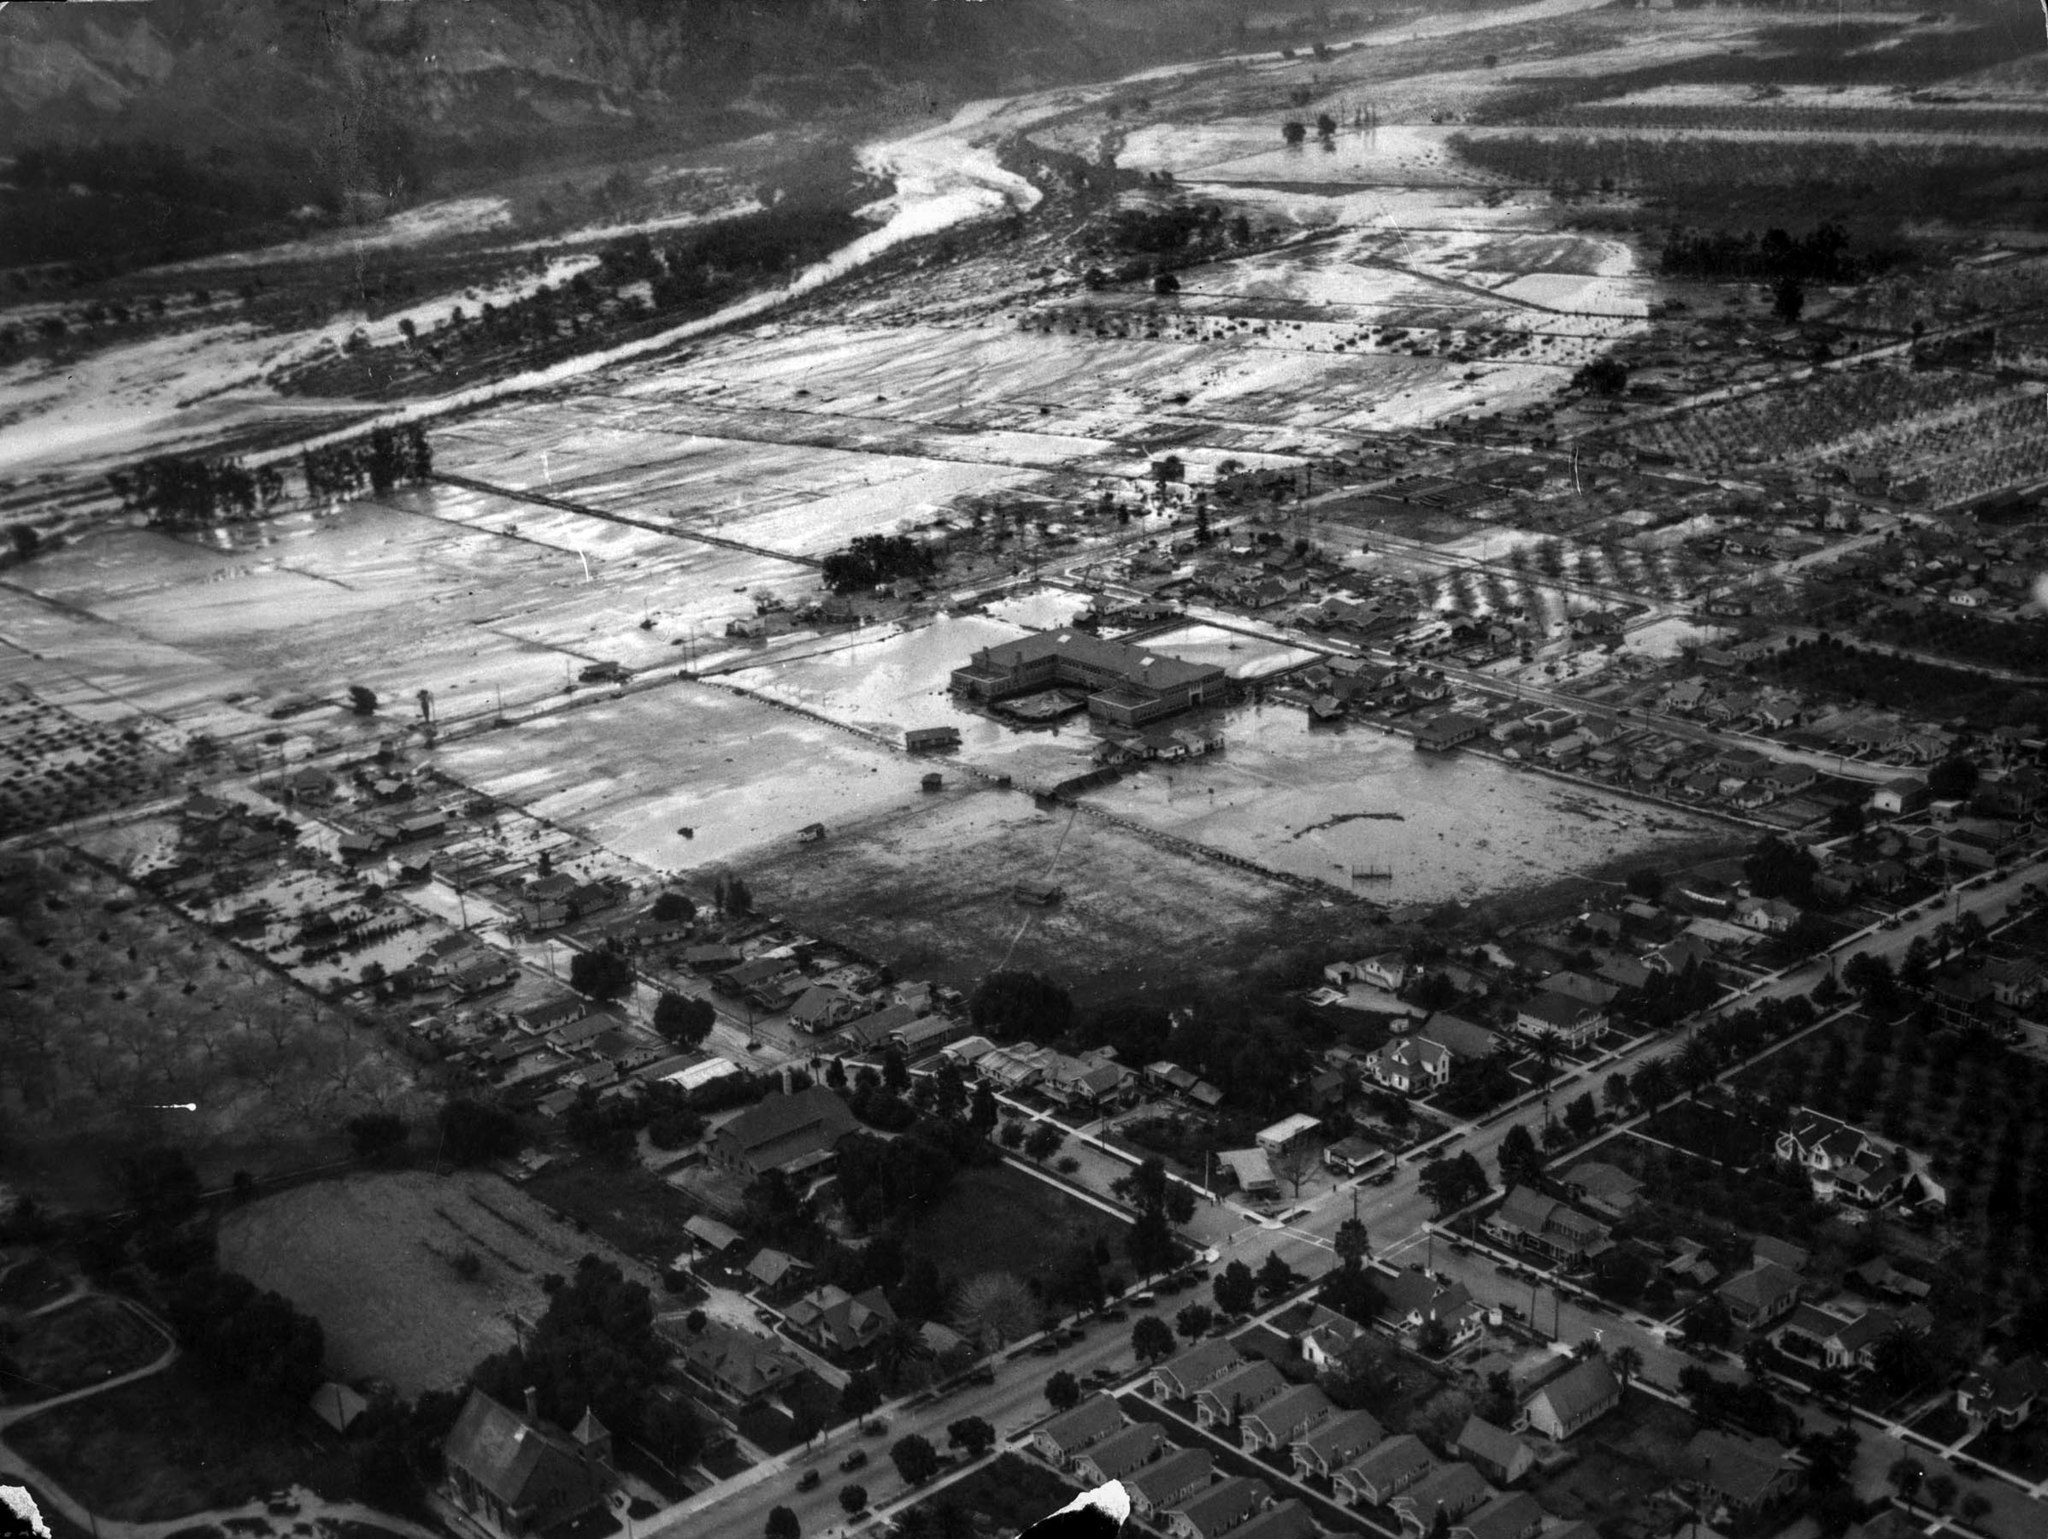 March 13, 1928: Aerial photo of Santa Paula portions of the city were inundated by water following t